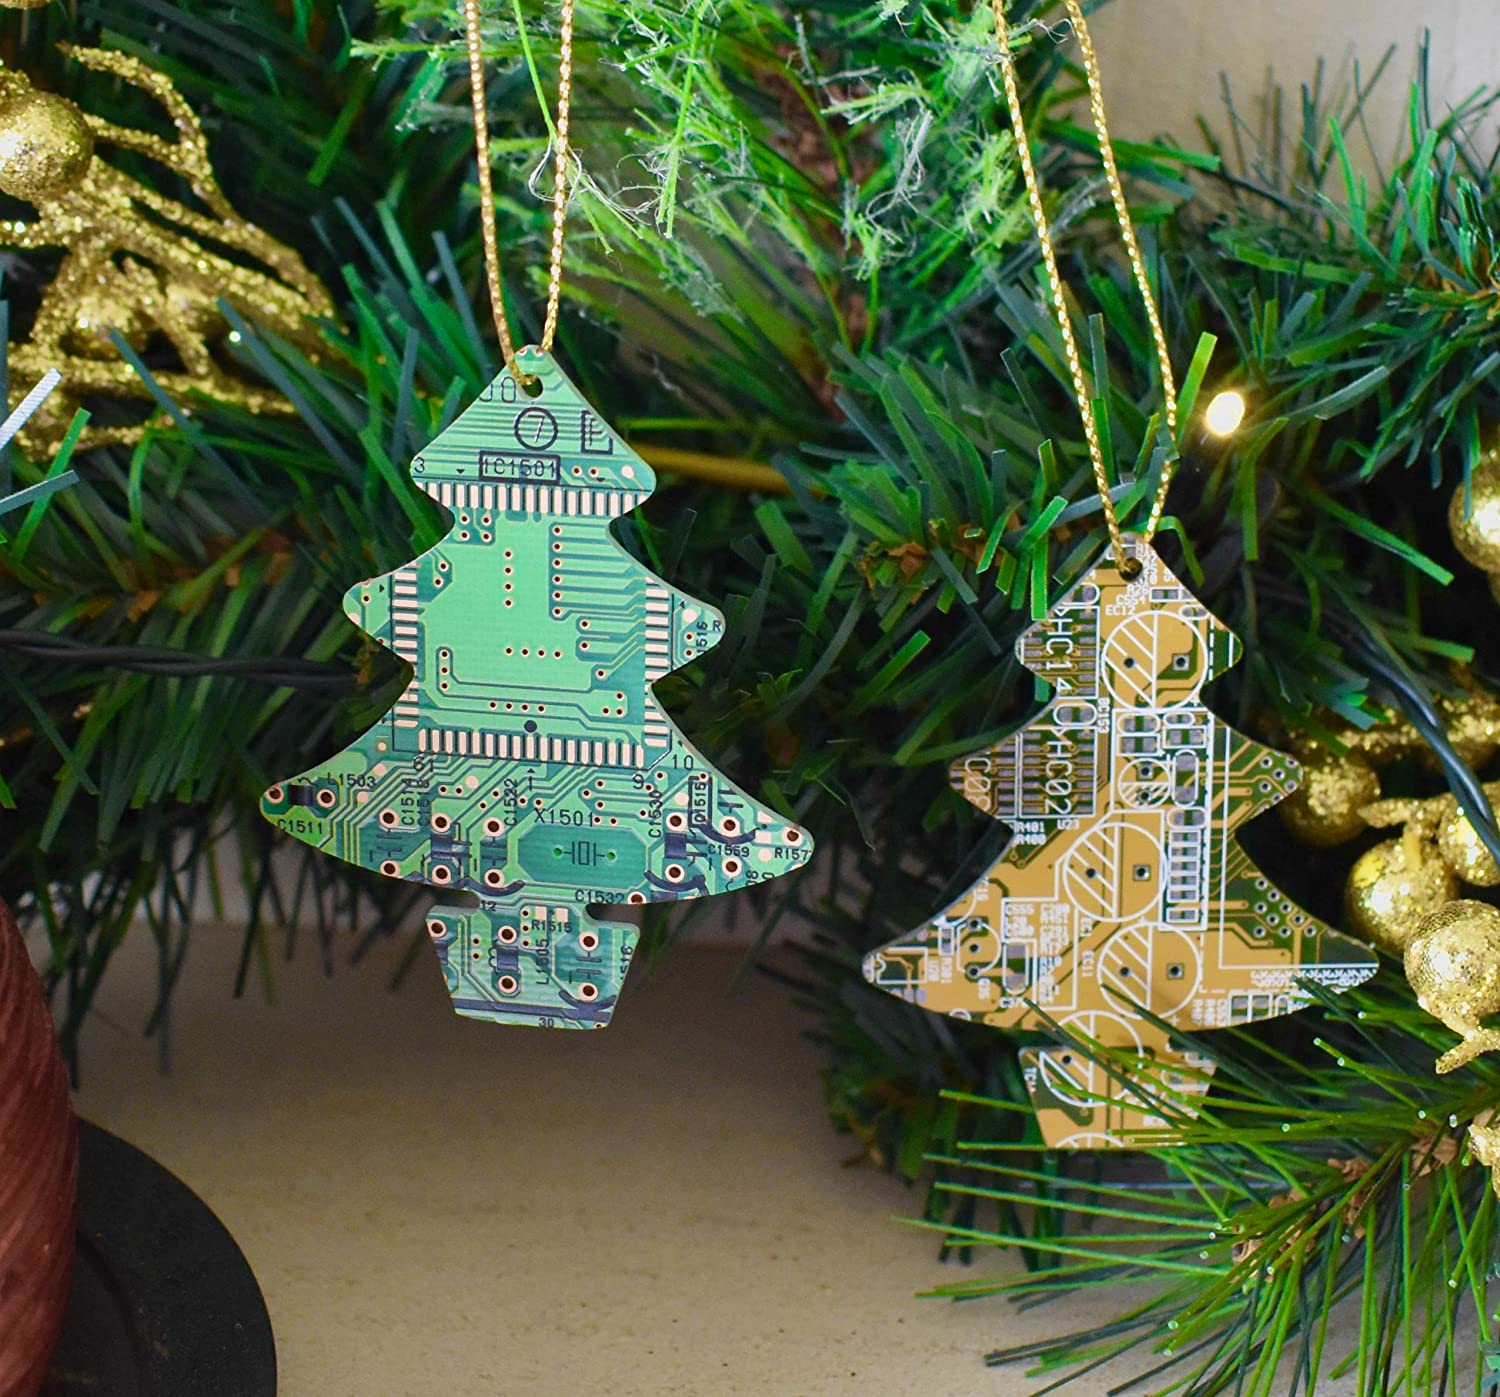 gift for computer geeks Green Christmas Tree Ornament recycled circuit board